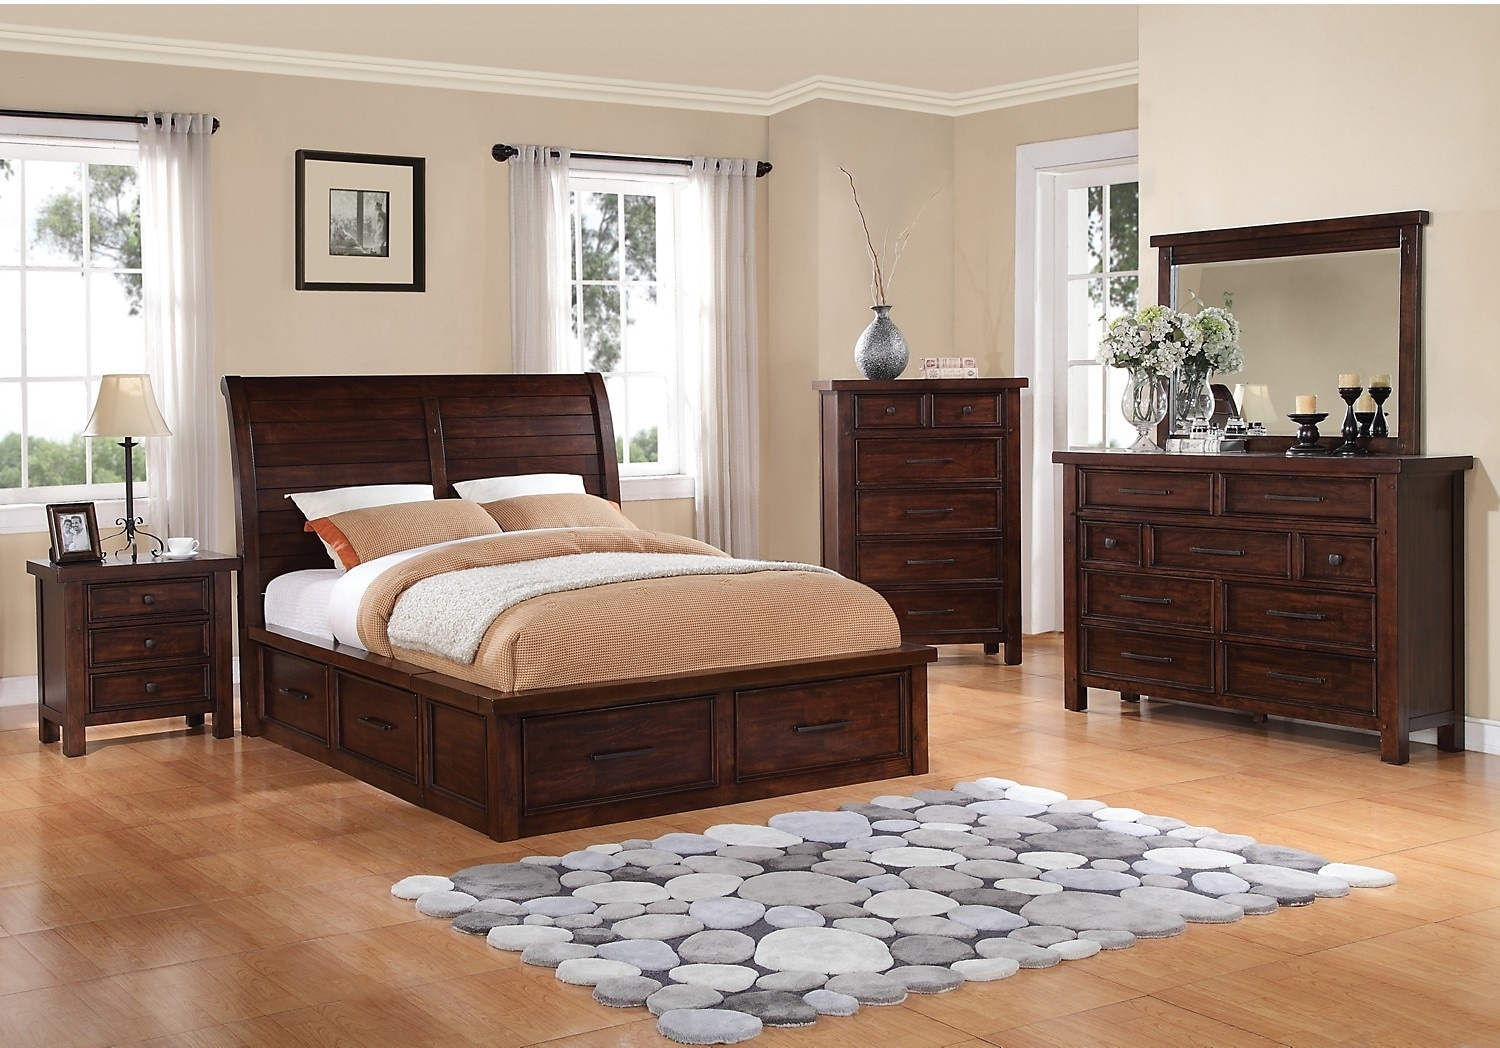 Bedroom Furniture - Sonoma 6-Piece Queen Storage Bedroom Set - Dark Brown